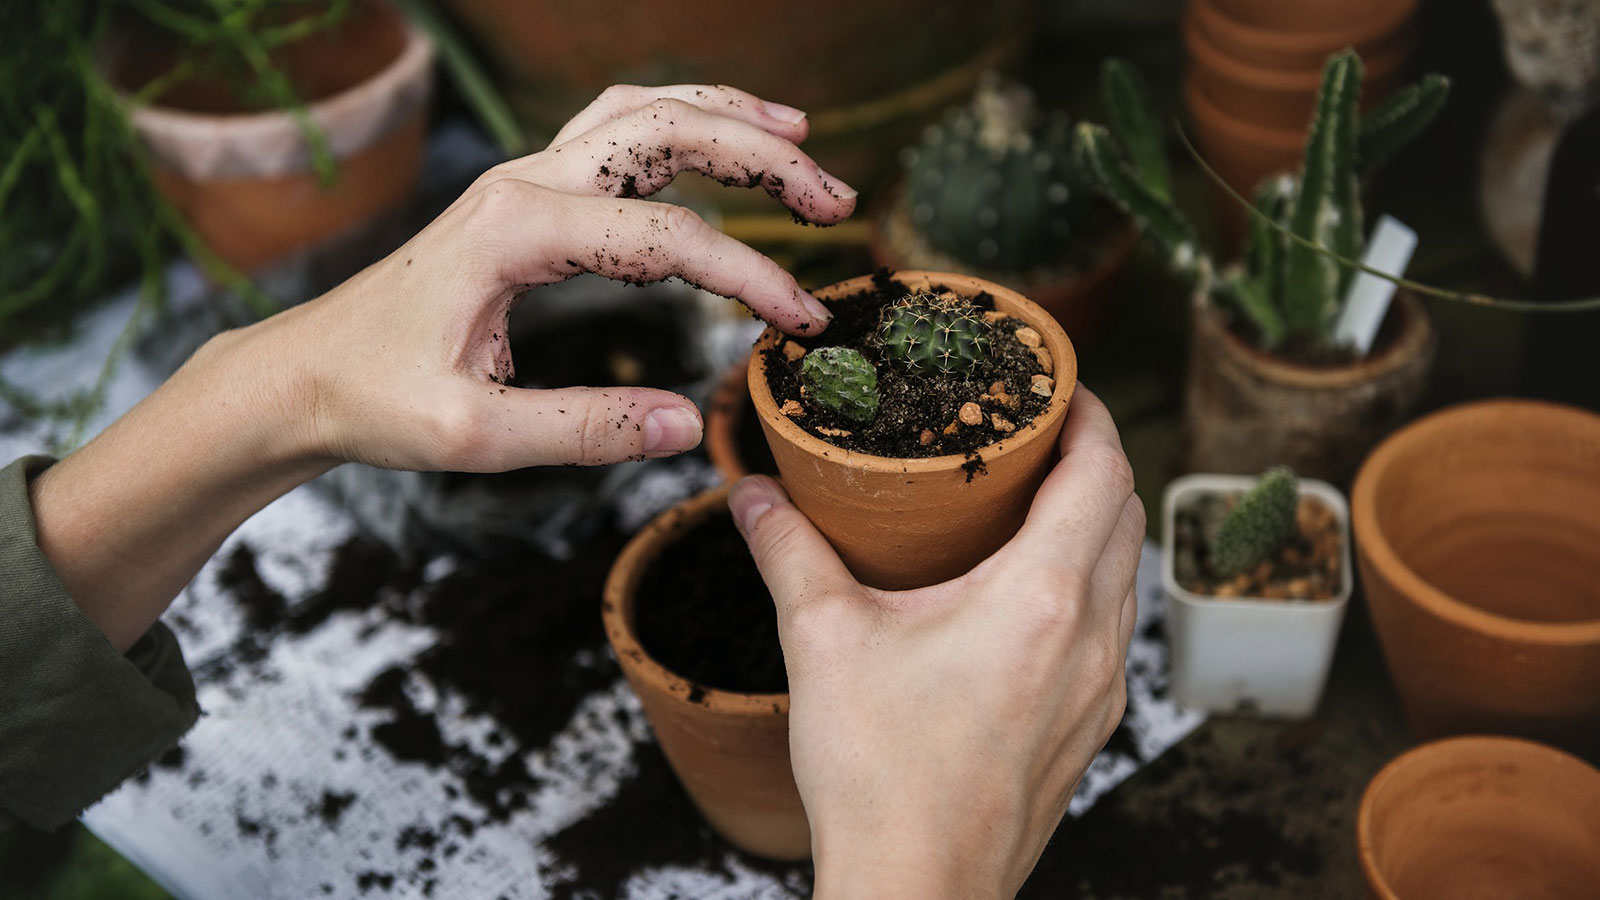 Hands potting a plant in garden